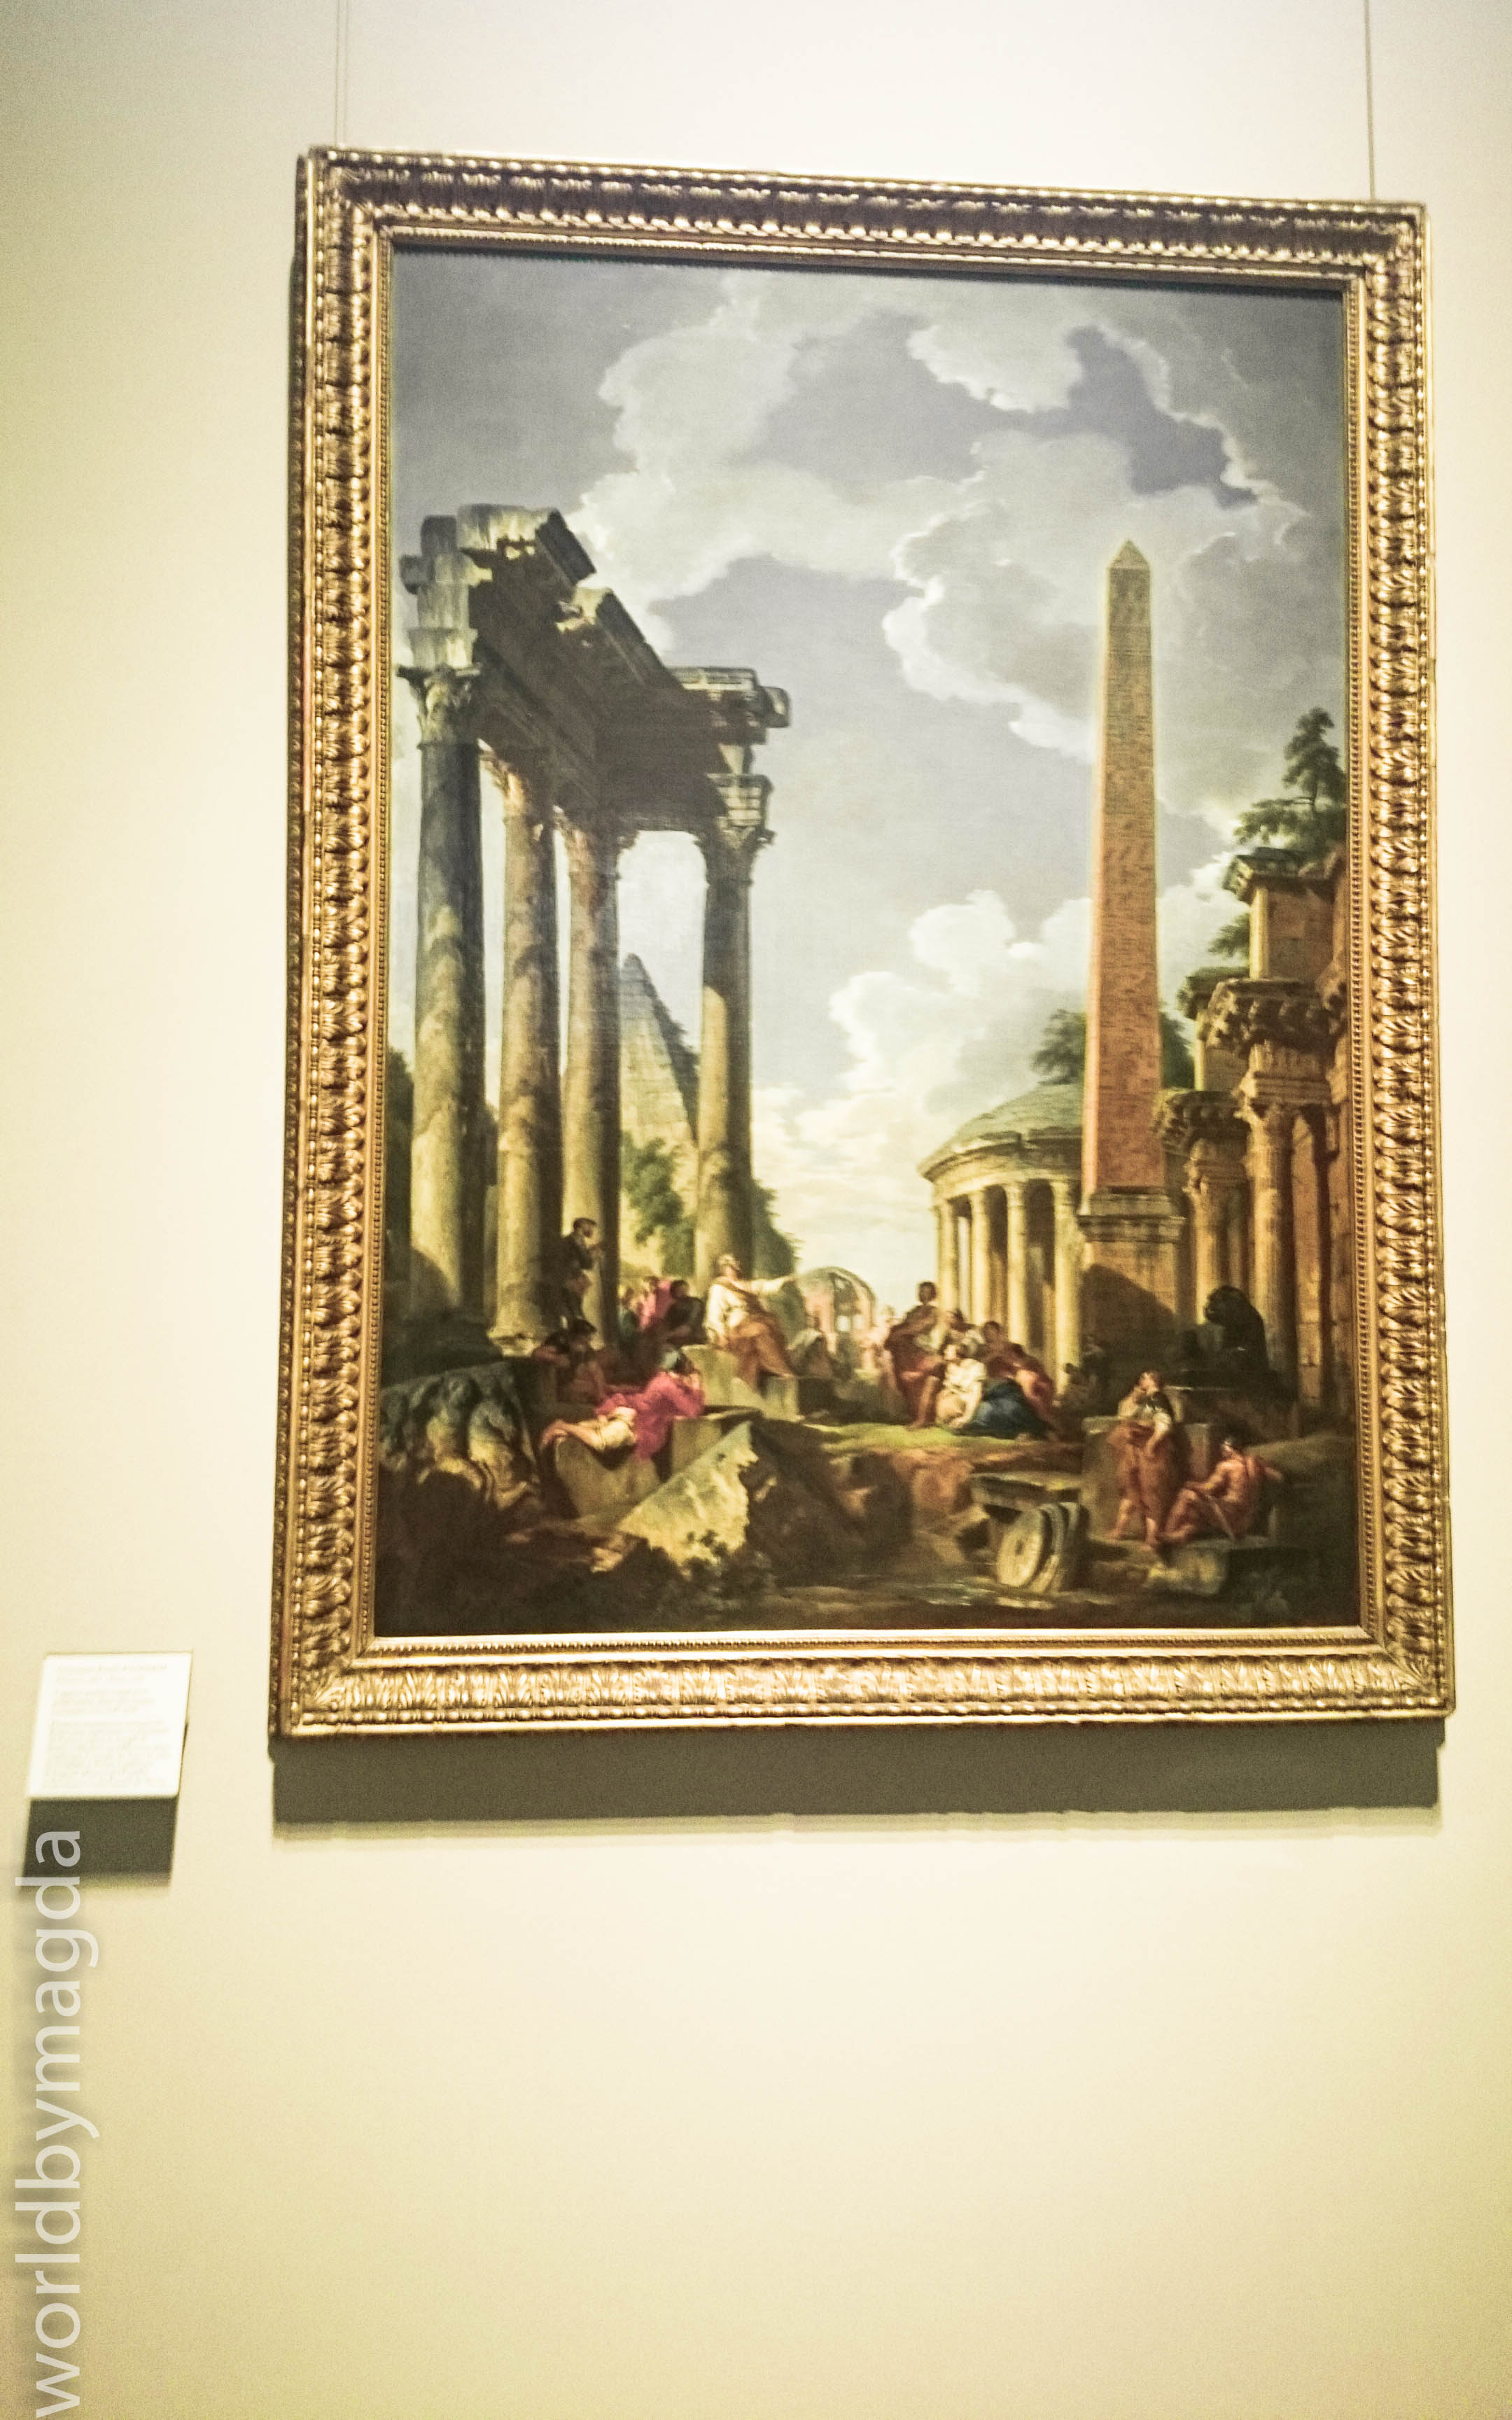 Painting collection in Louvre